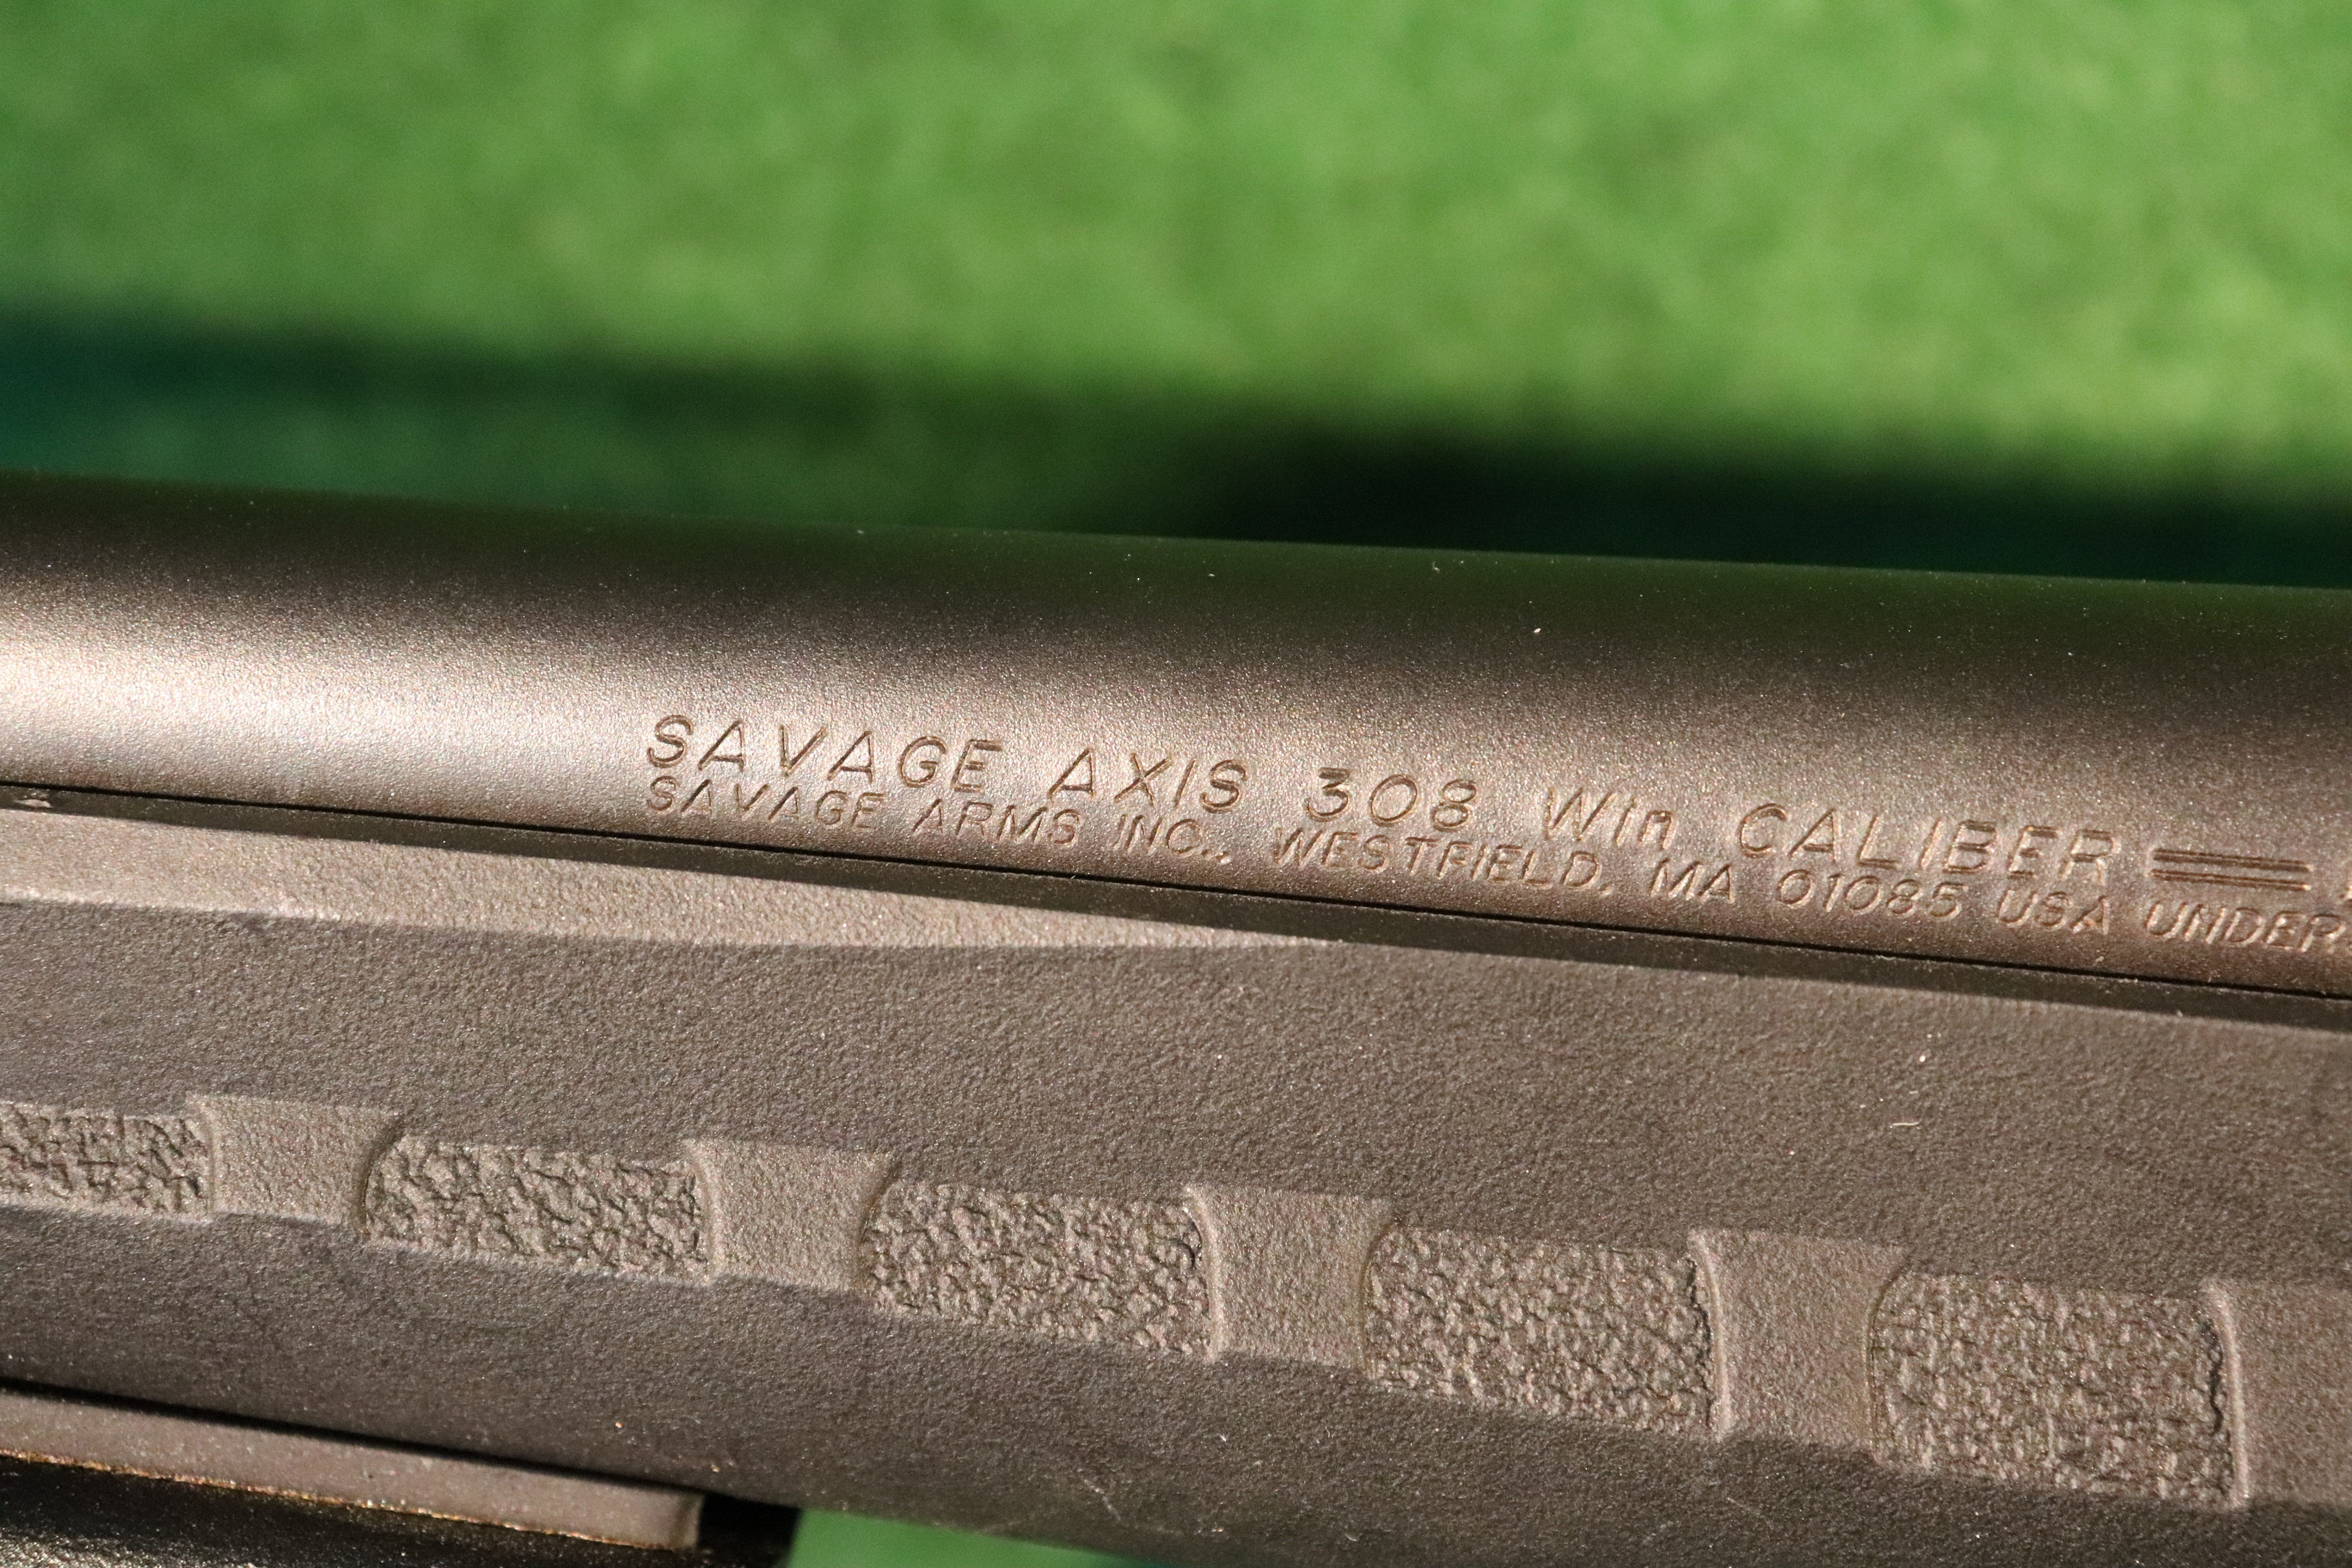 Savage Axis cal.308 win